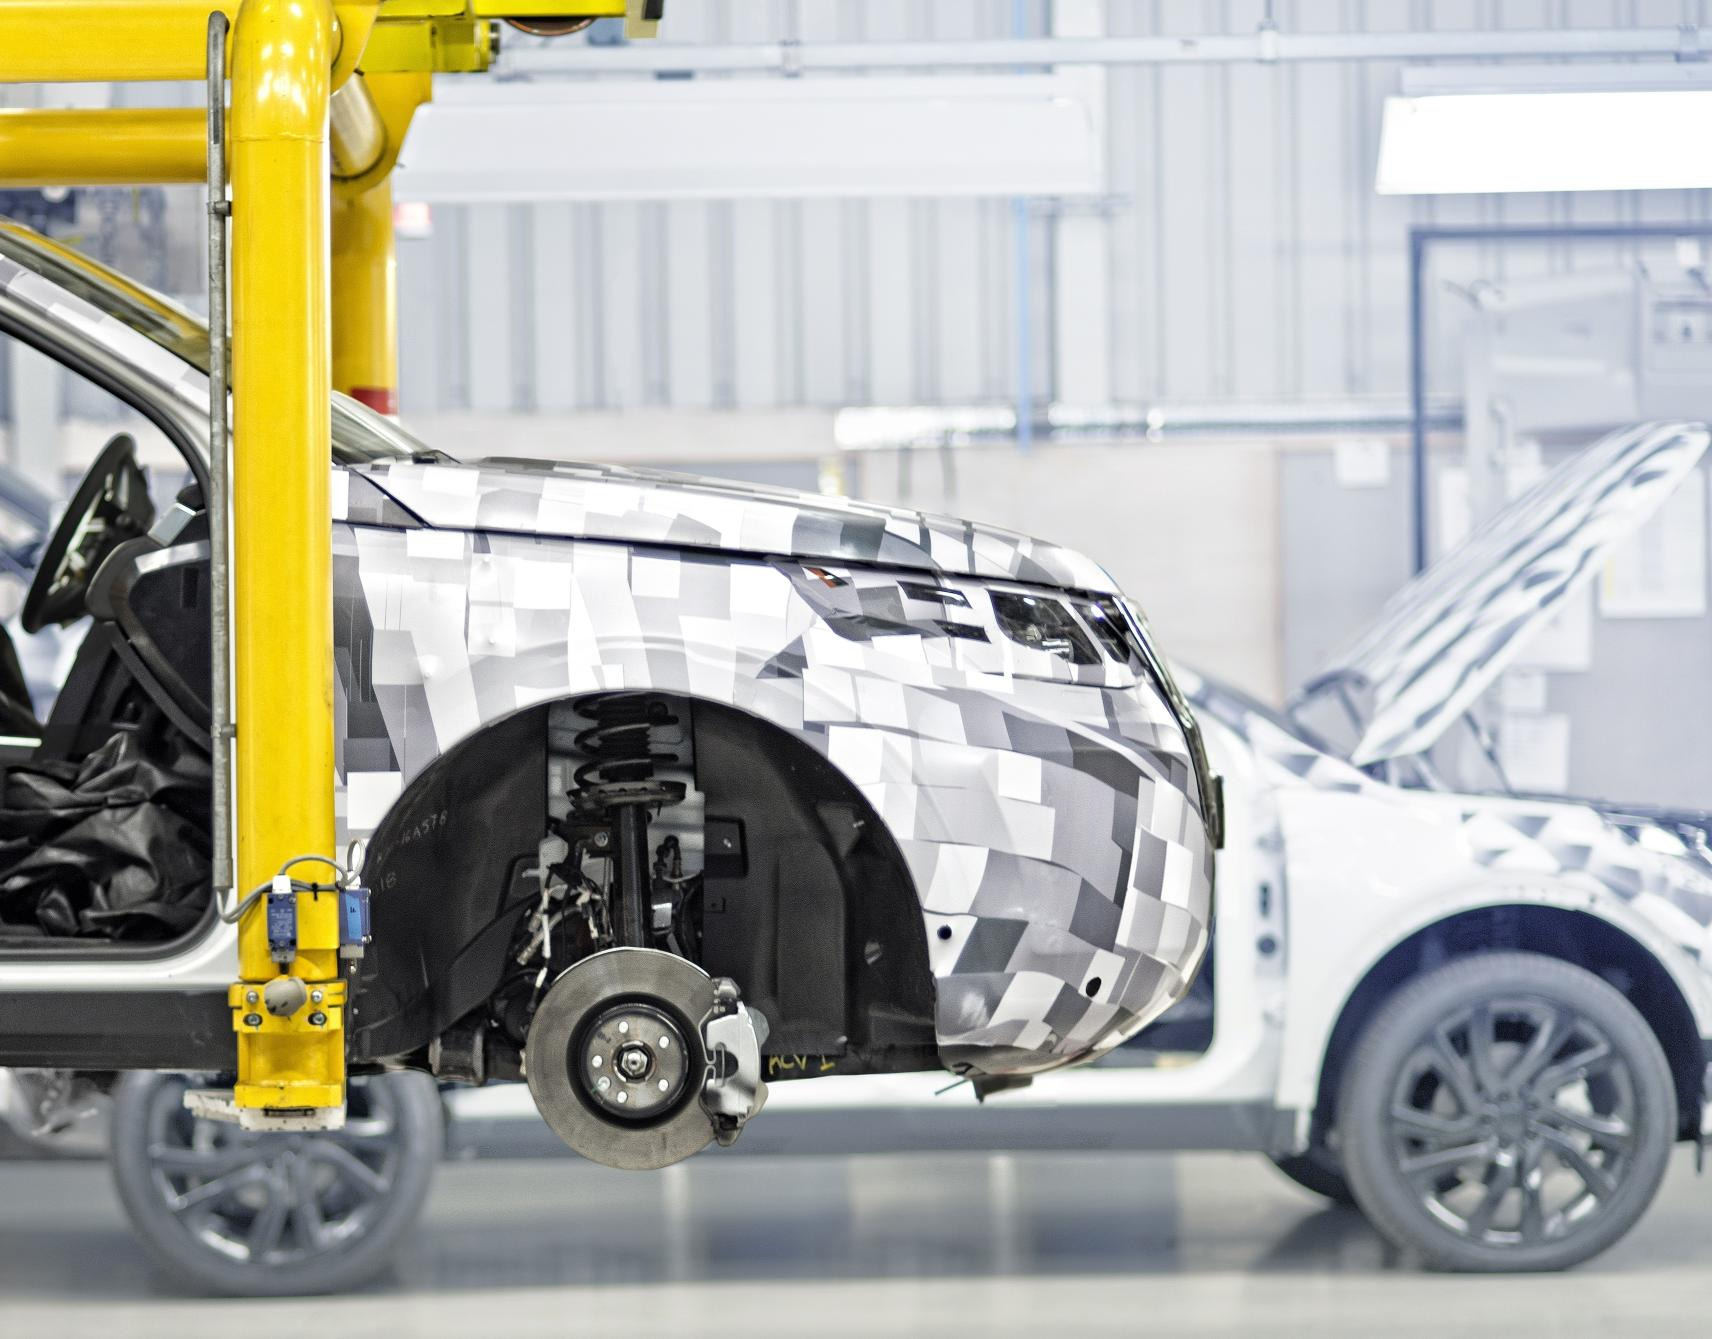 163 200 Million And 250 New Jobs At Jaguar Land Rover For